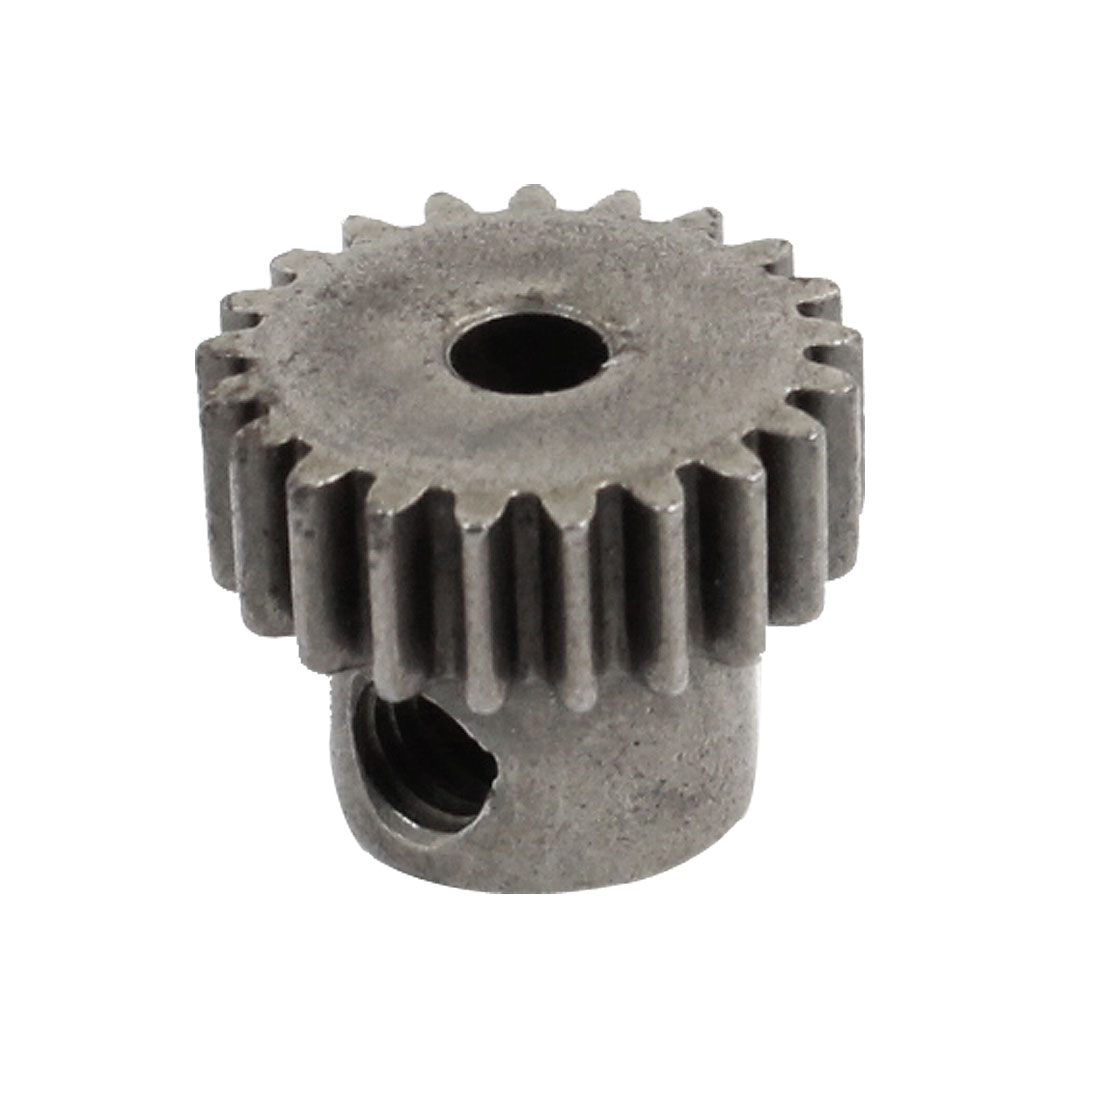 RC Electric Car Upgrade Parts 1/10 Steel Pinion Gear 21T 21 Teeth 11181